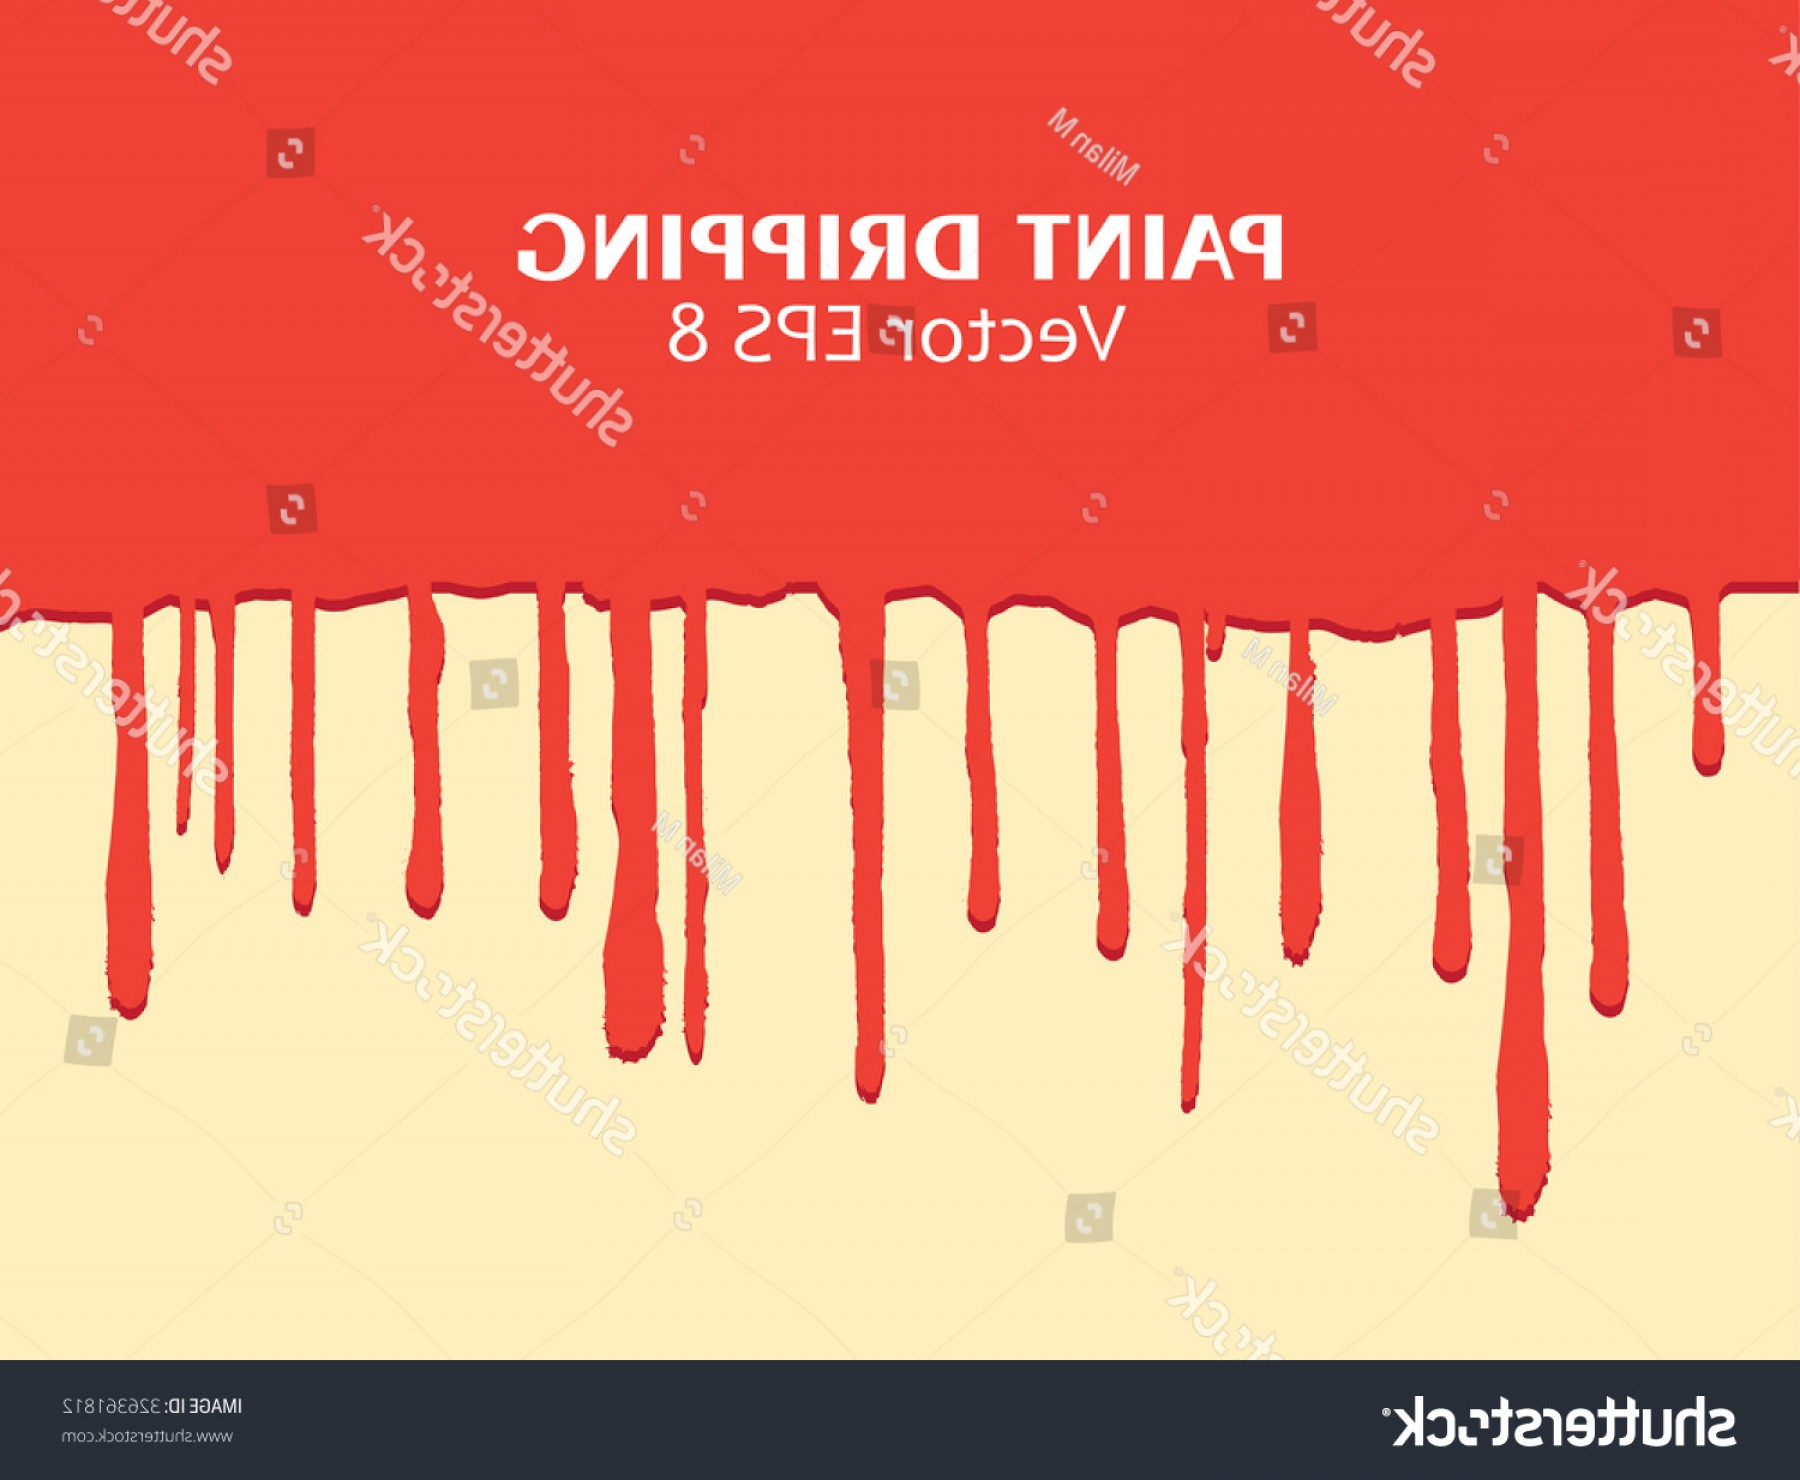 Dripping Paint Vector Illustration: Paint Drippingpaint Drips Backgroundvector Illustration